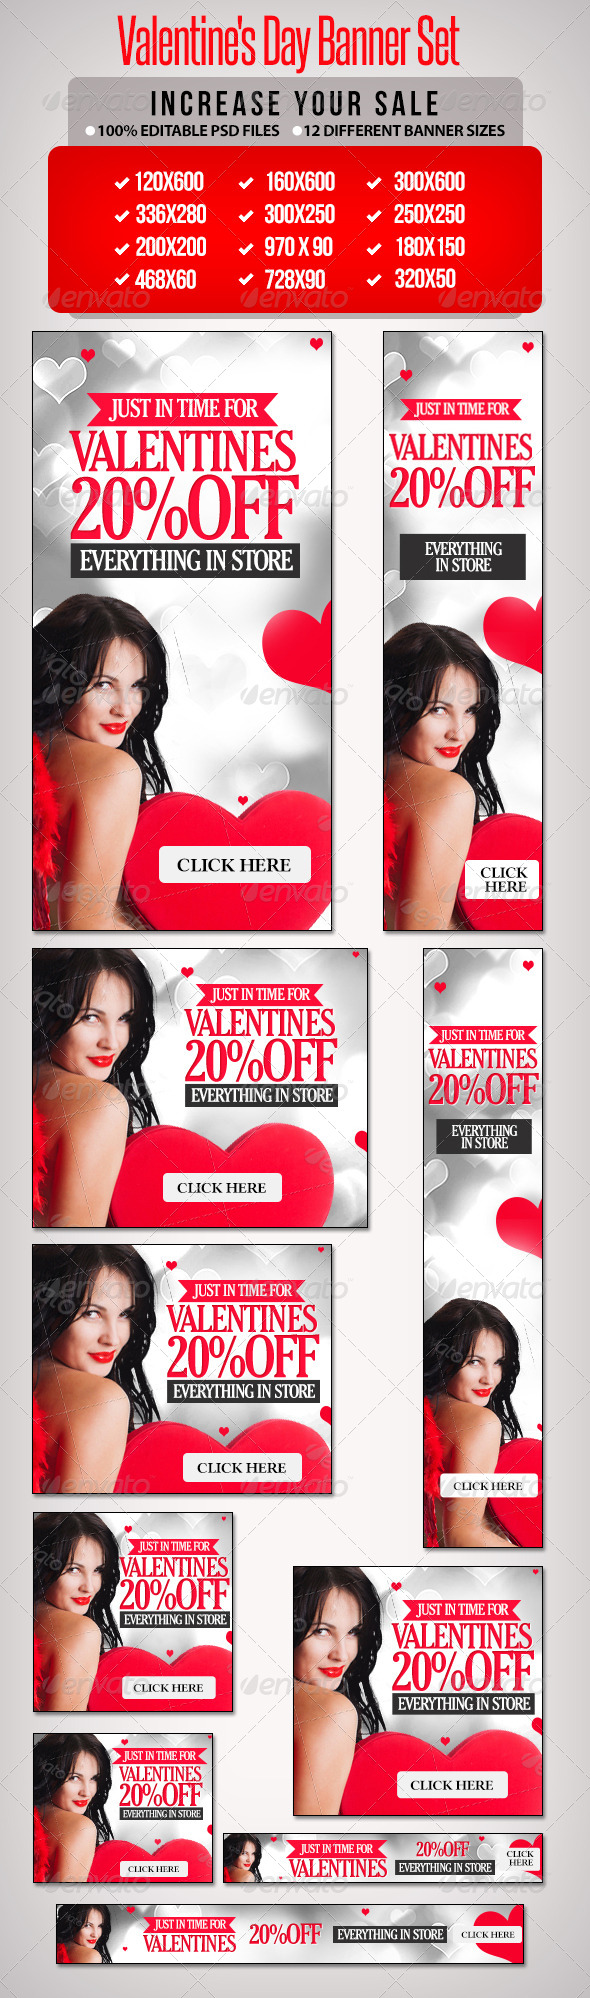 Valentine's Day Banner Set 7 - Banners & Ads Web Elements